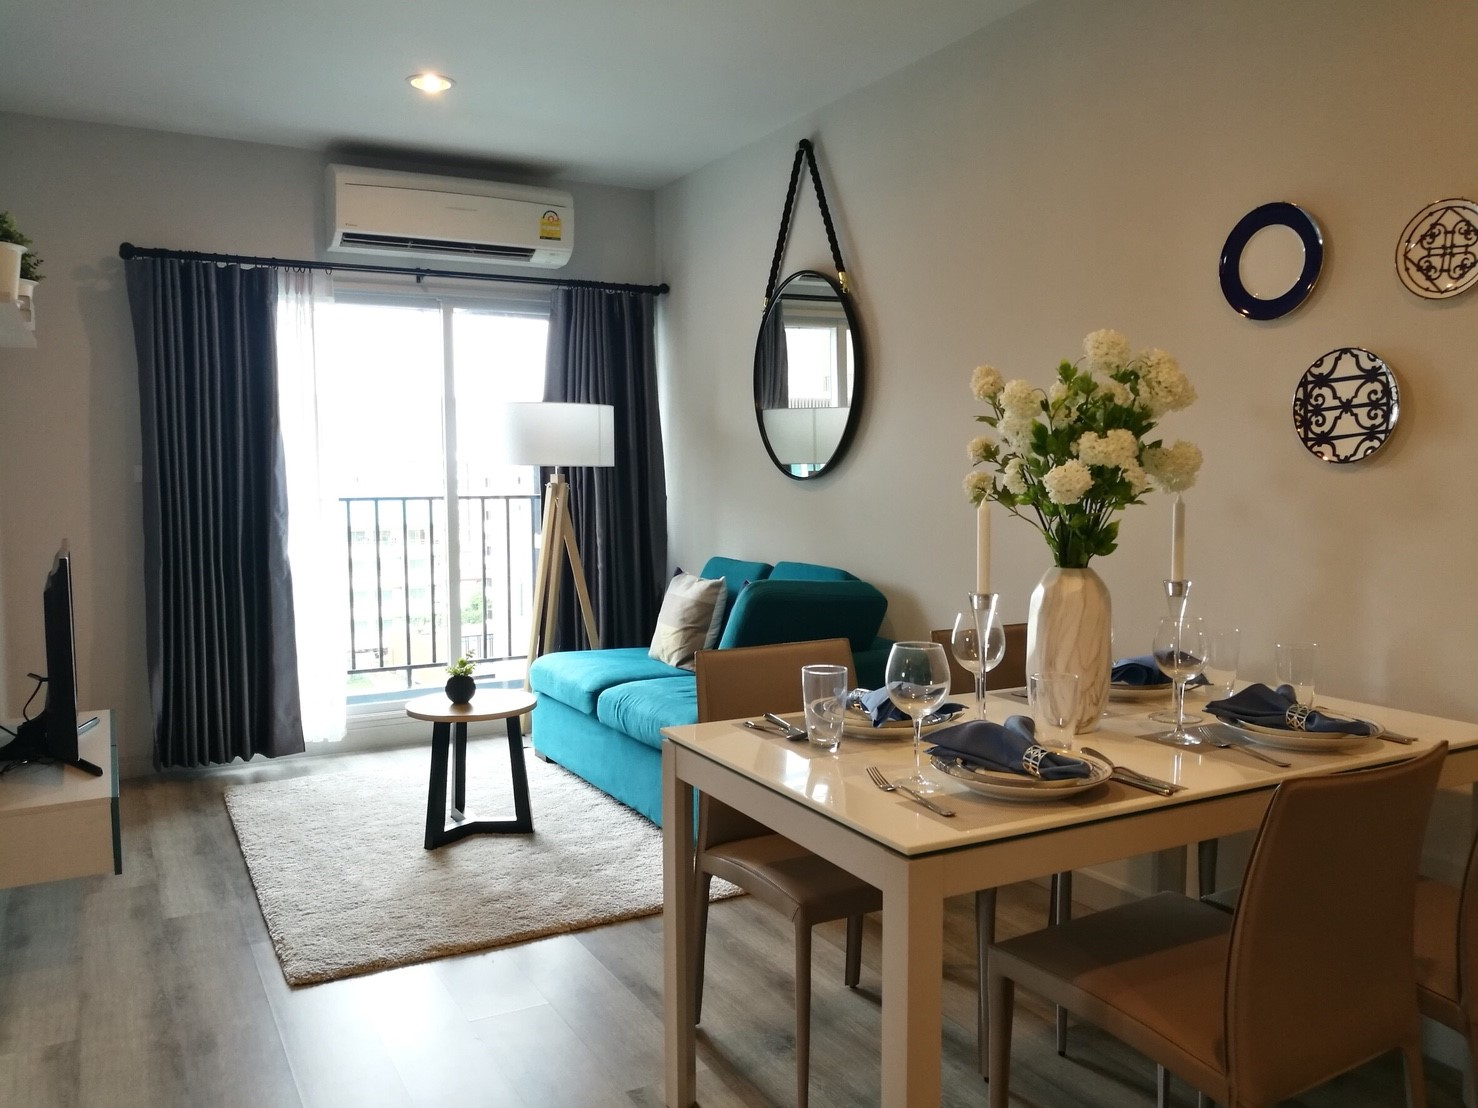 For SaleCondoChonburi, Pattaya, Bangsa : Sell Centric Sea 4.8 million baht, 2 bedrooms, 59.5 square meters, City View, 7th floor